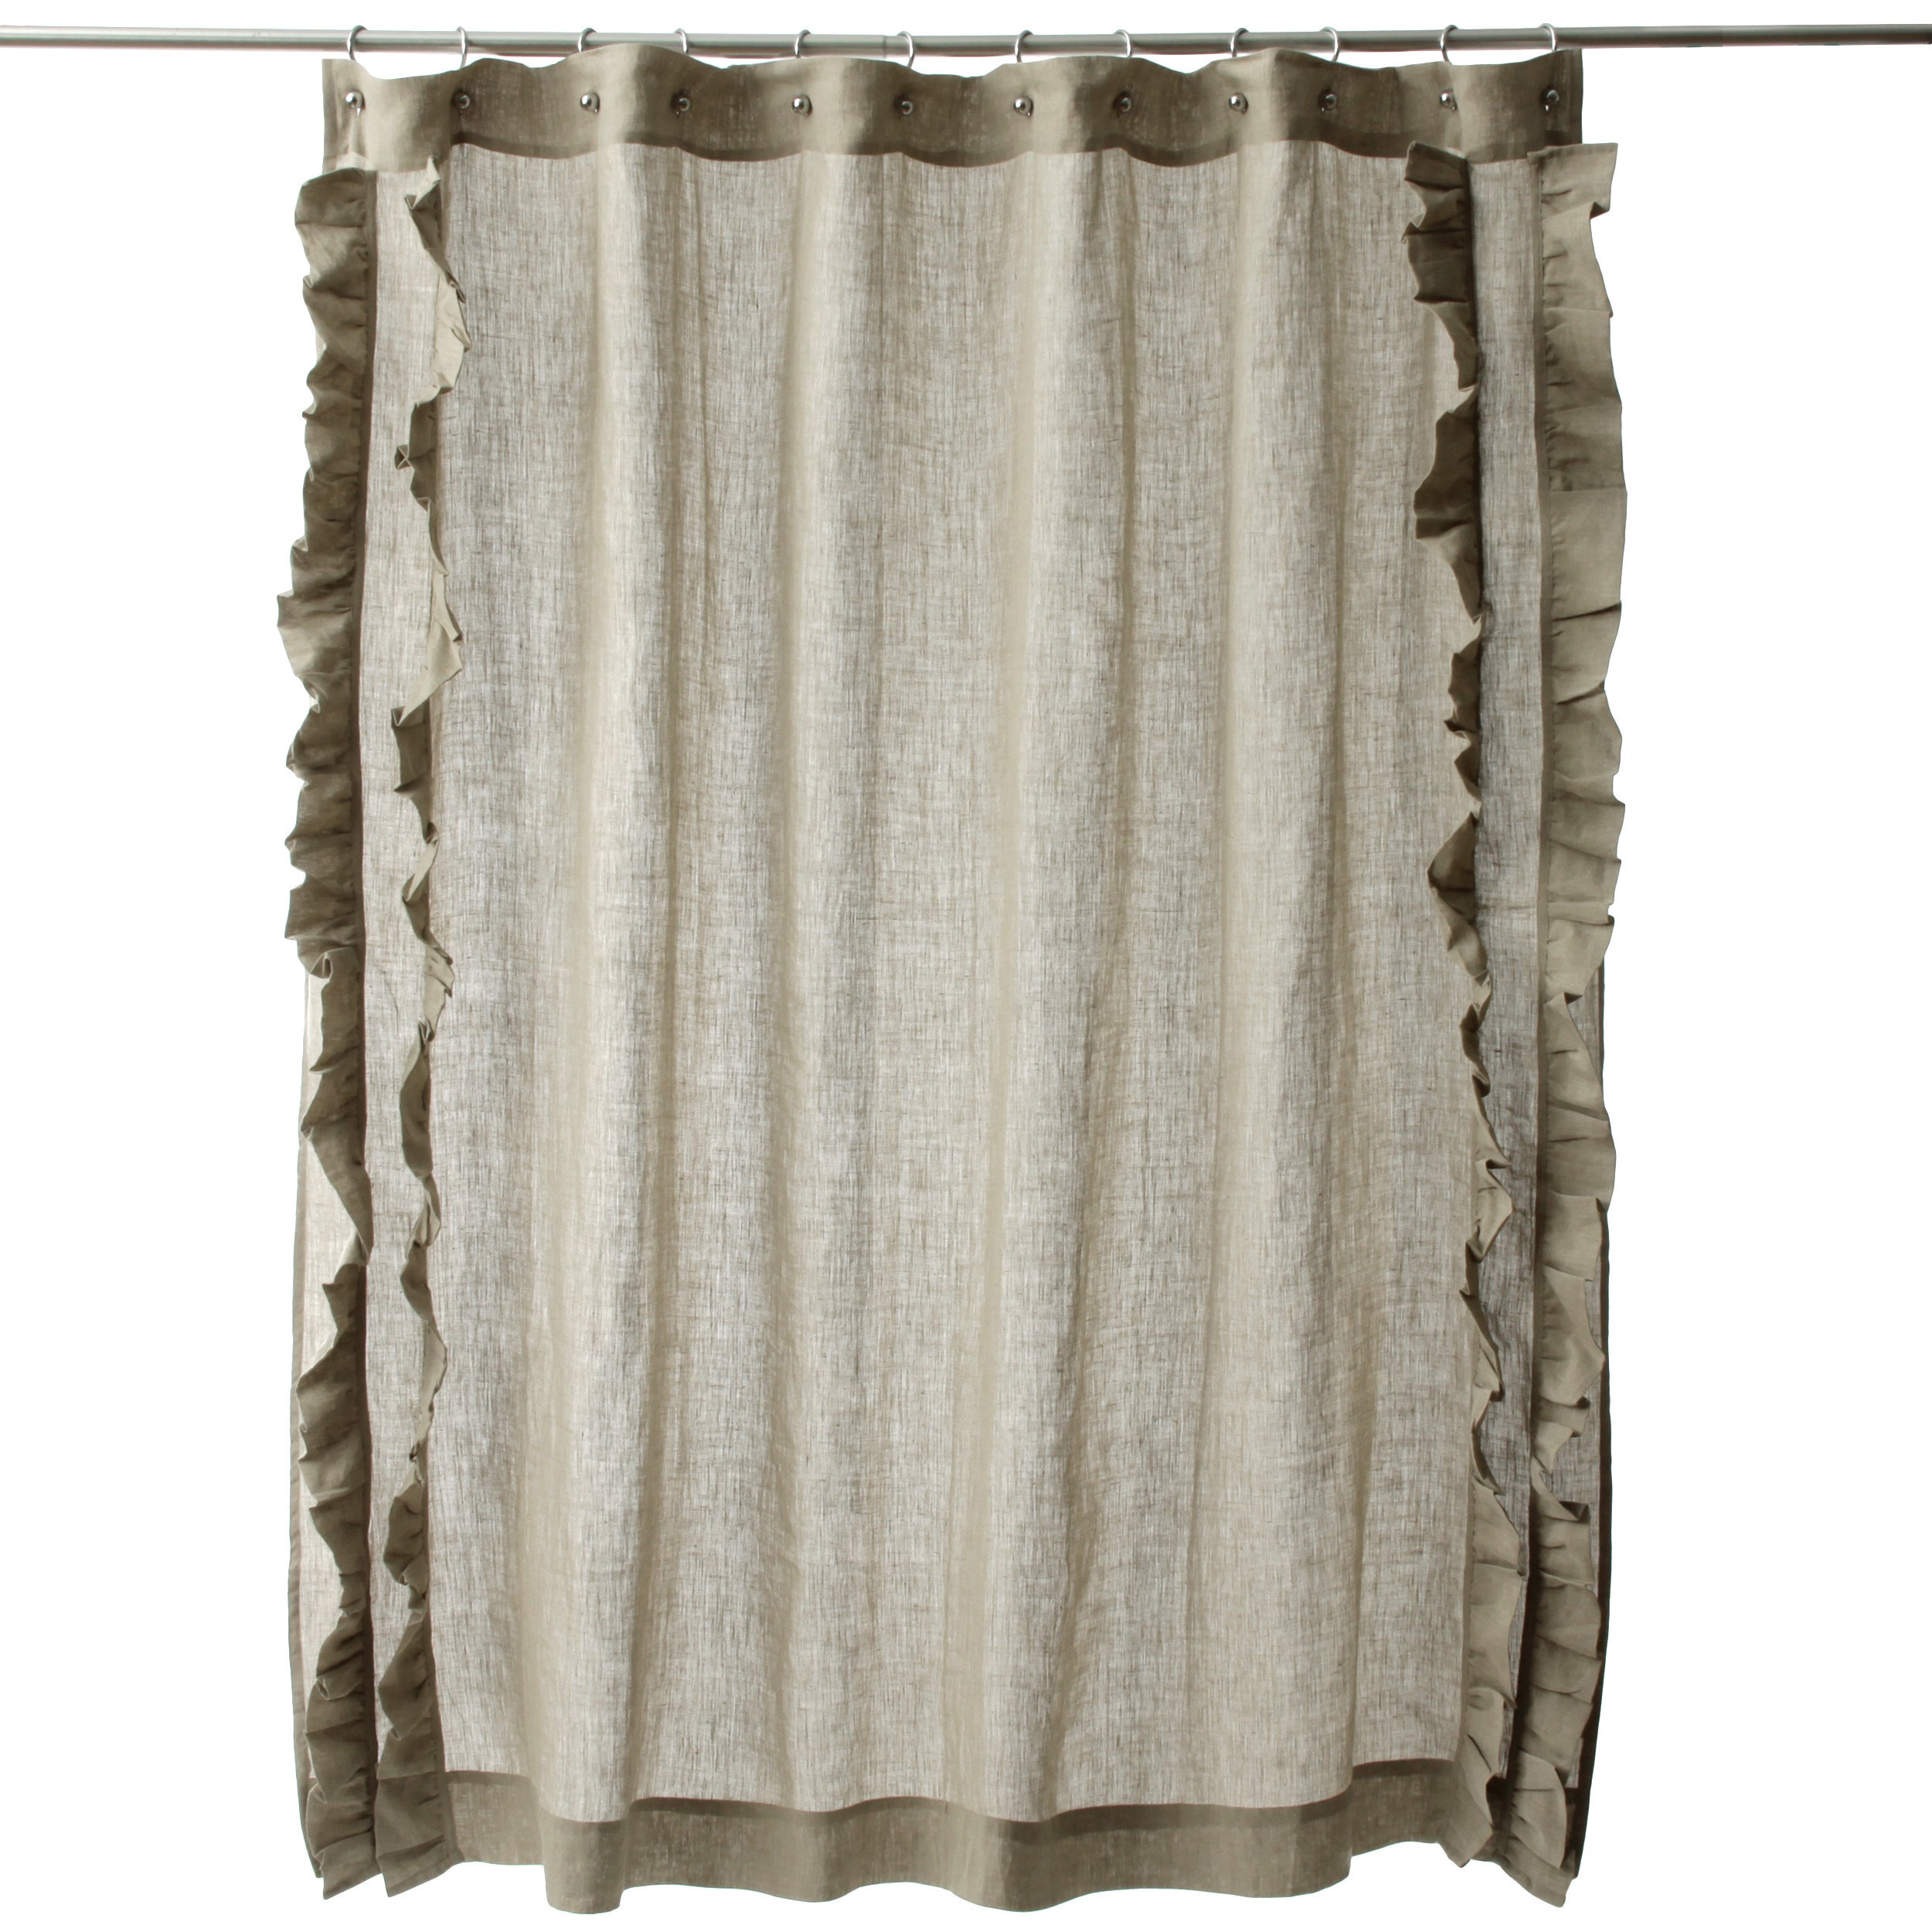 Ruffled Natural Cotton Linen Shower Curtain